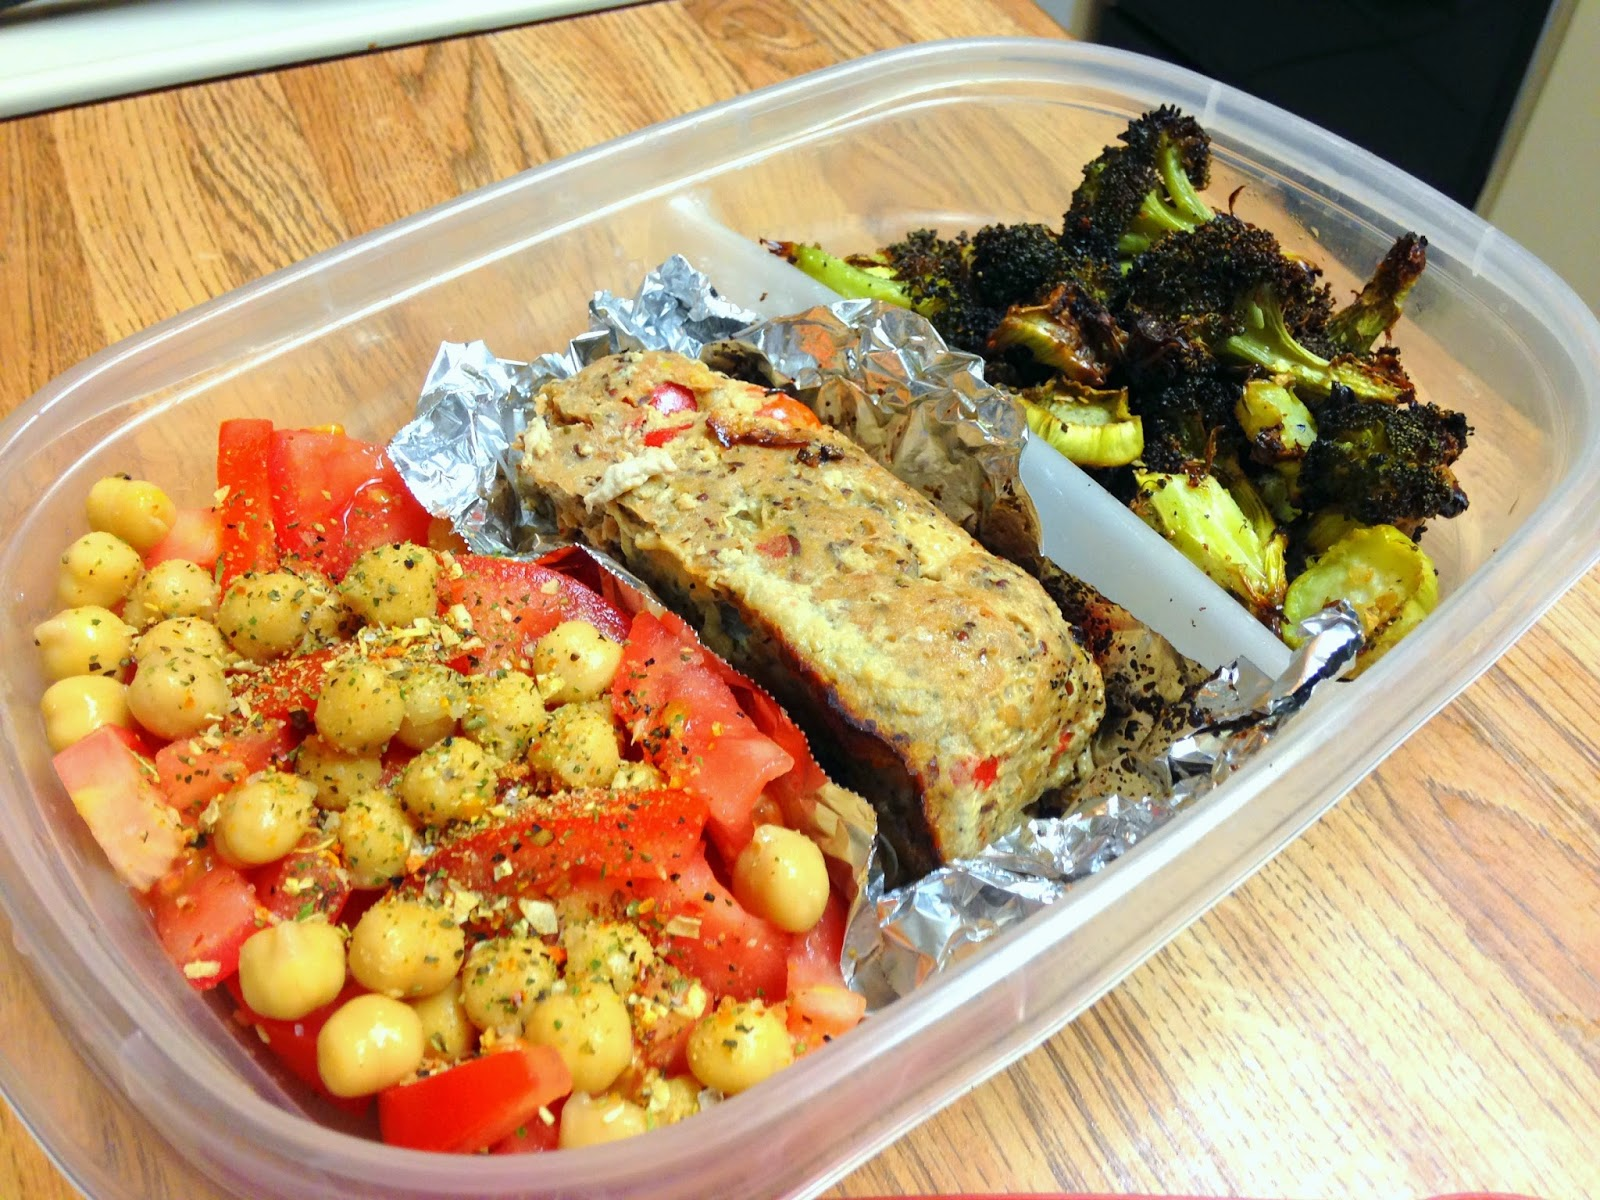 Easy leftover lunch from Hungry Gator Gal: south of the border turkey meatloaf, roasted broccoli, and a chickpeas/diced tomato mixture topped with red wine vinegar and Trader Joe's 21 Seasoning Salute.